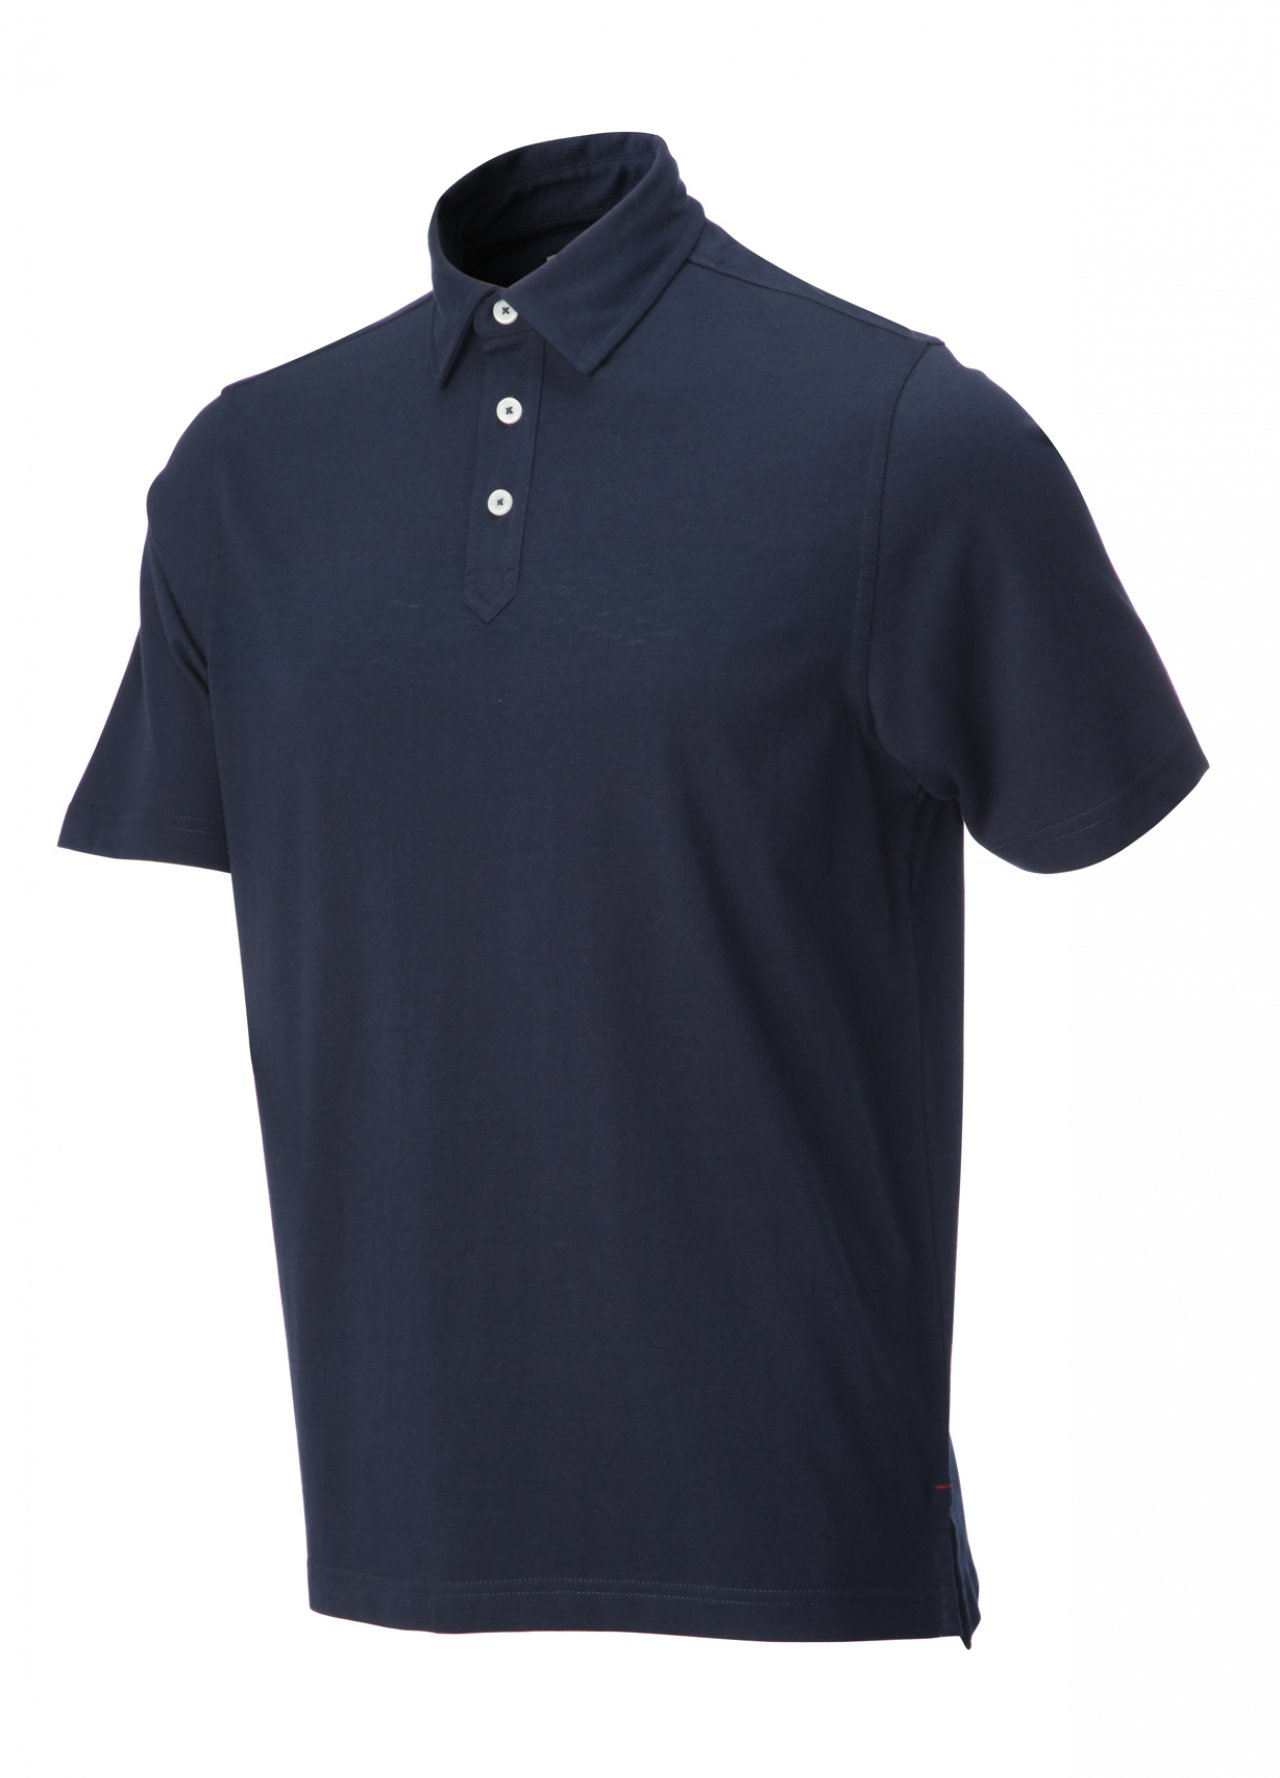 Golf shirts county golf golf sale golf clothing for Polo shirts clearance sale